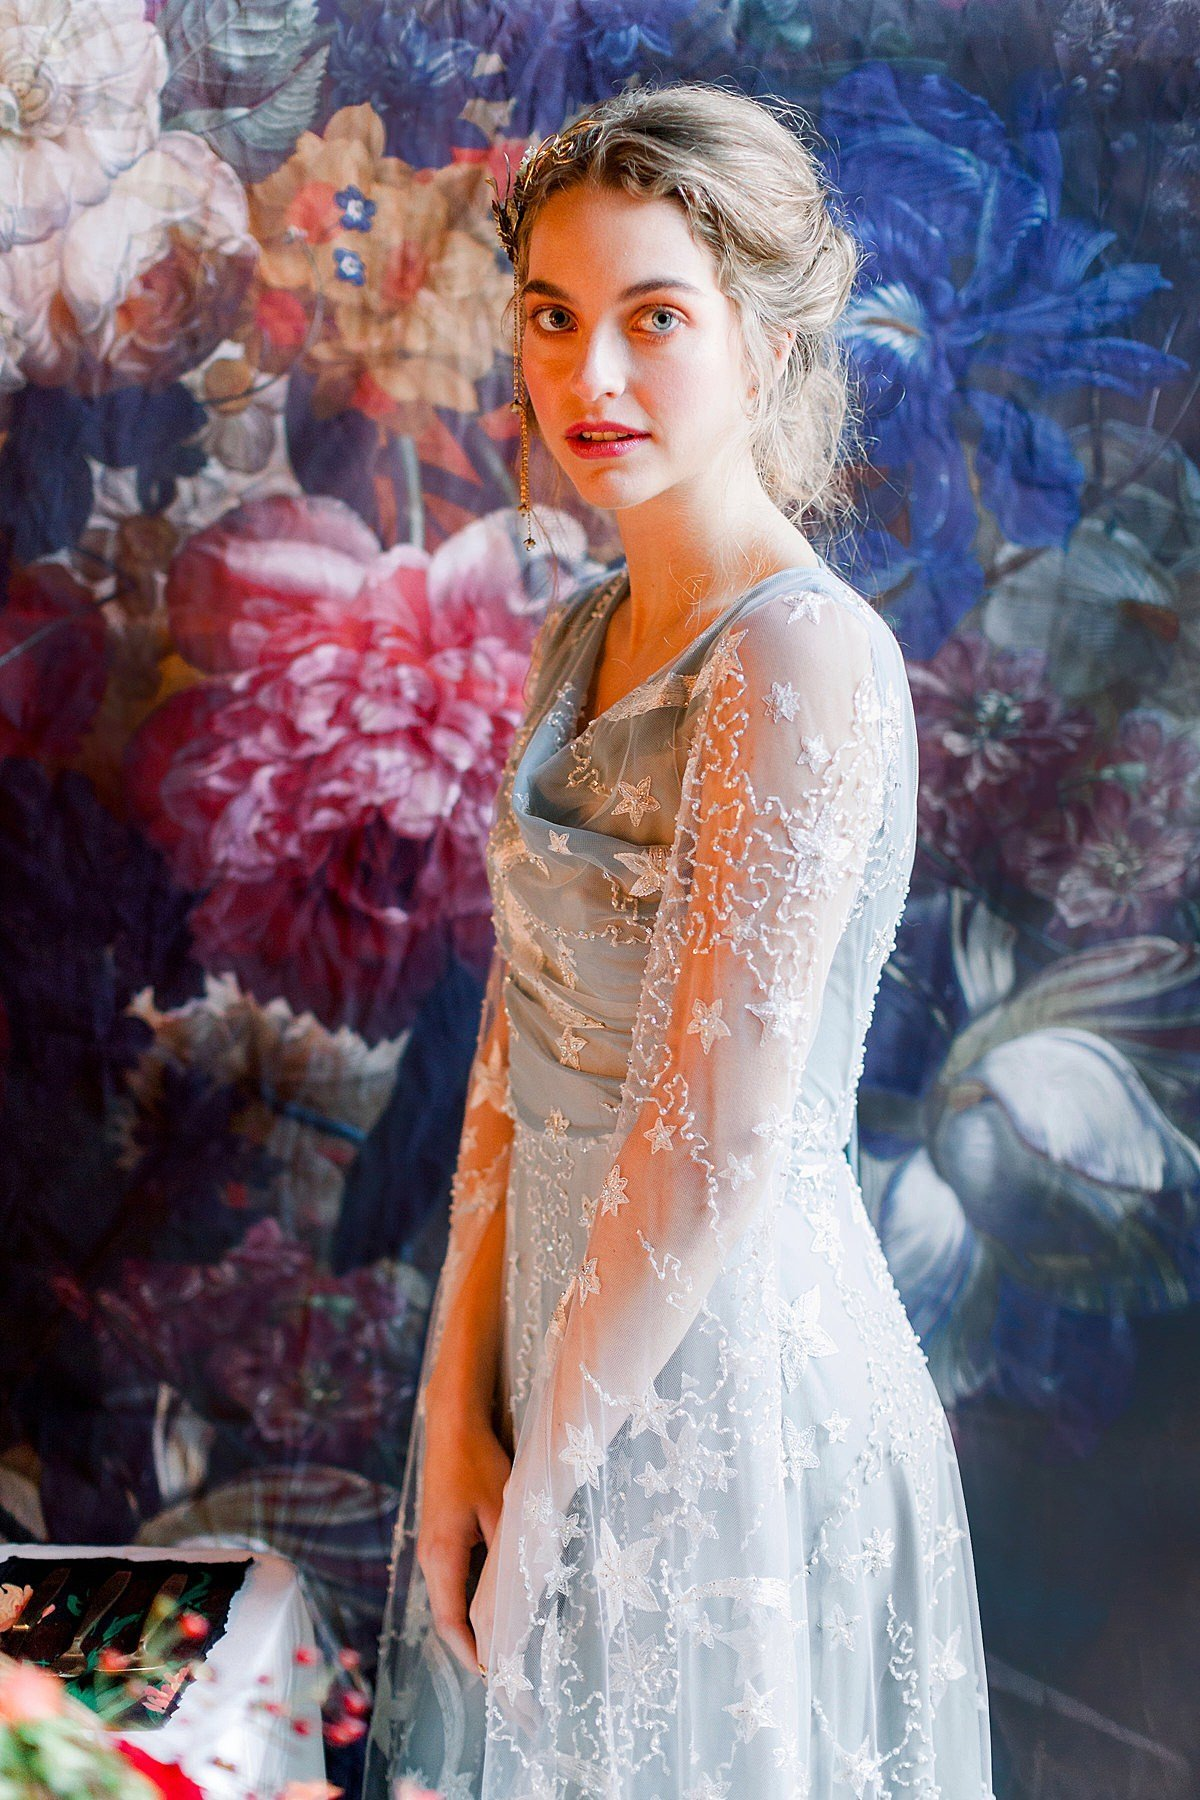 Briar-Rose-Starry-Dress-Candlelight-JFD-JoBradbury (5)